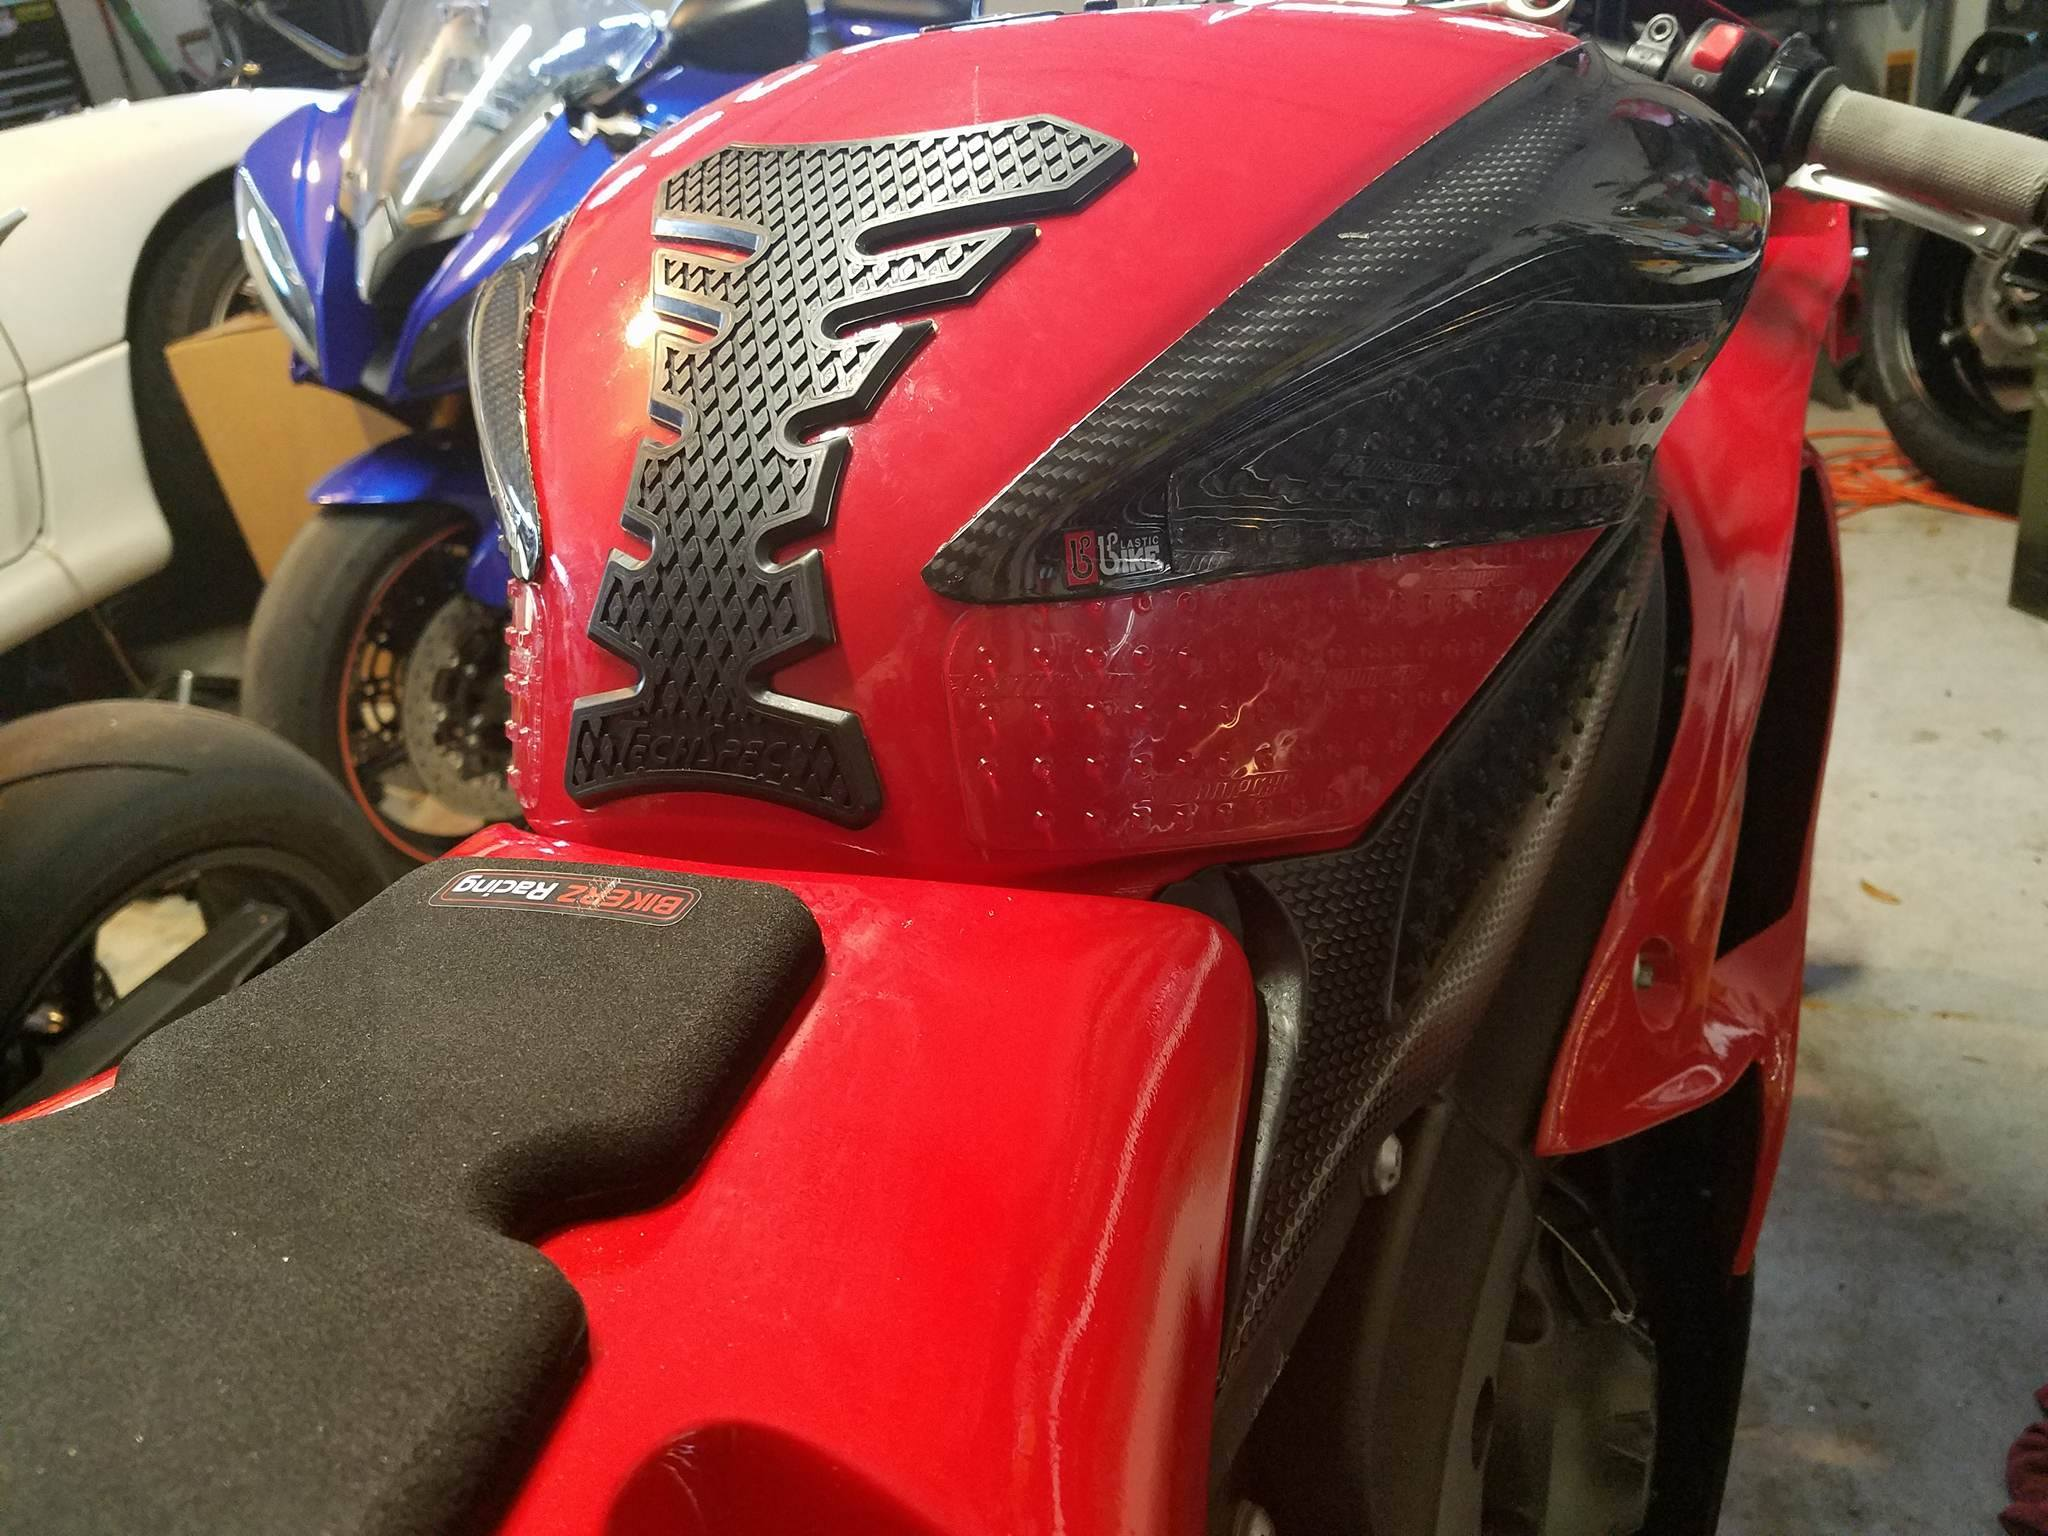 tank grips - Yamaha R6 Forum: YZF-R6 Forums